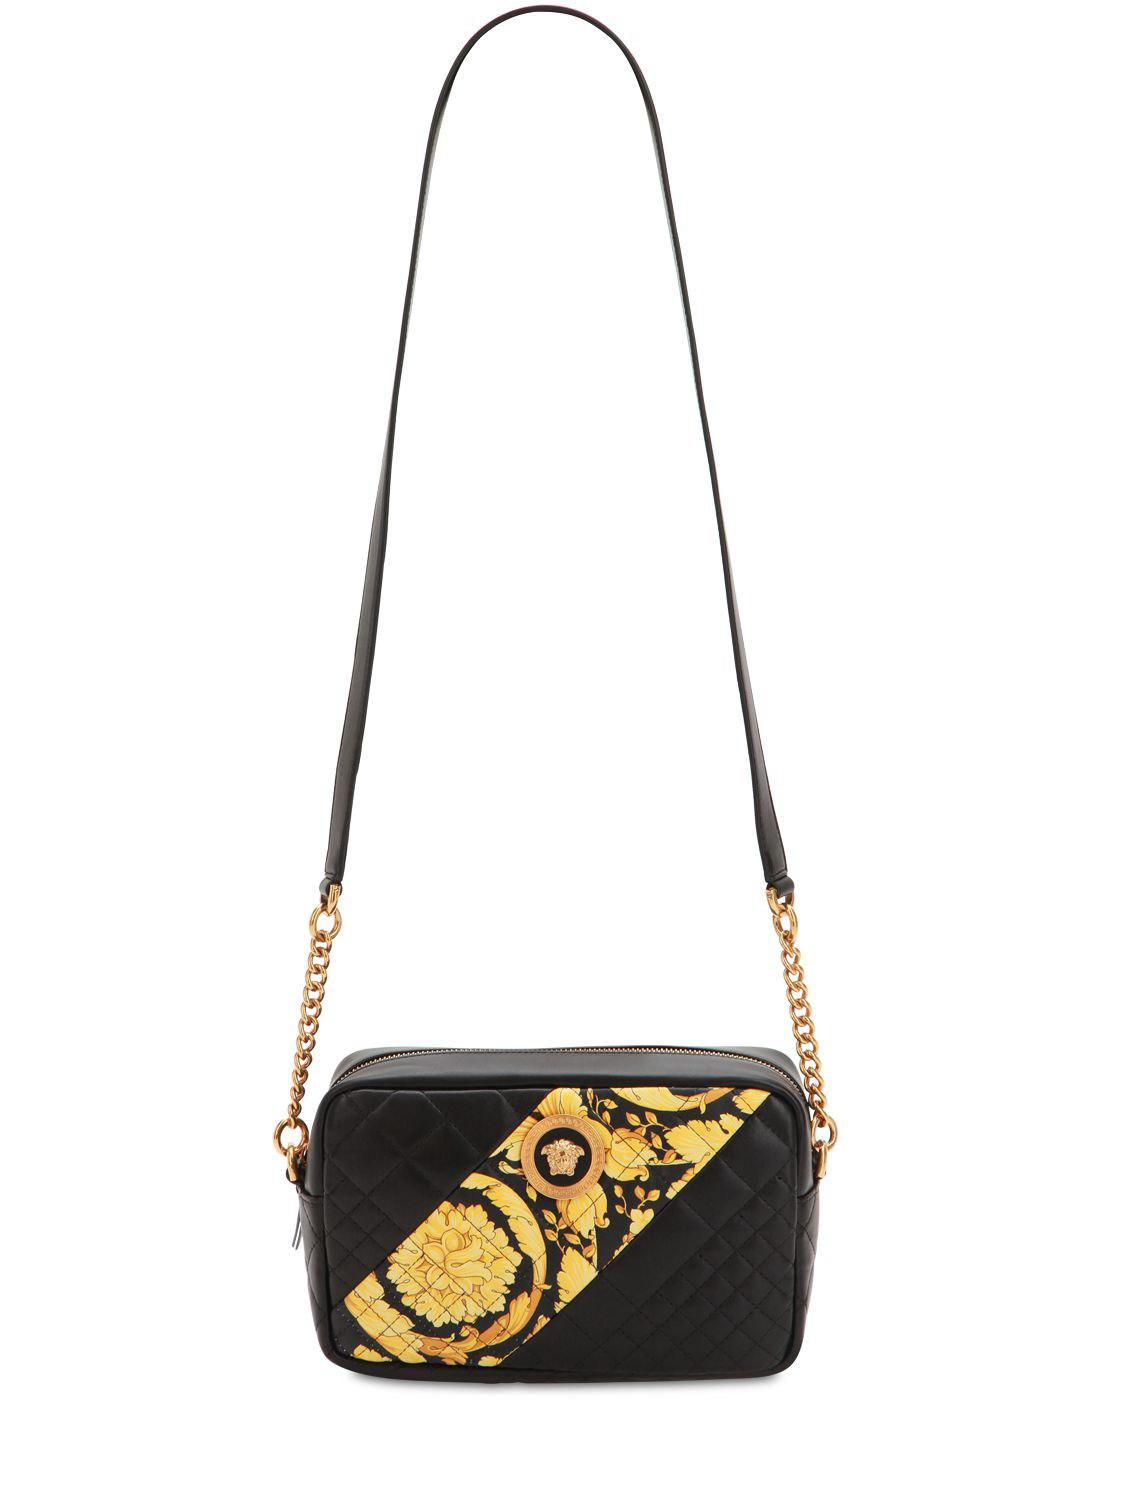 765f5b82 Versace Quilted Leather Shoulder Bag in Black - Lyst